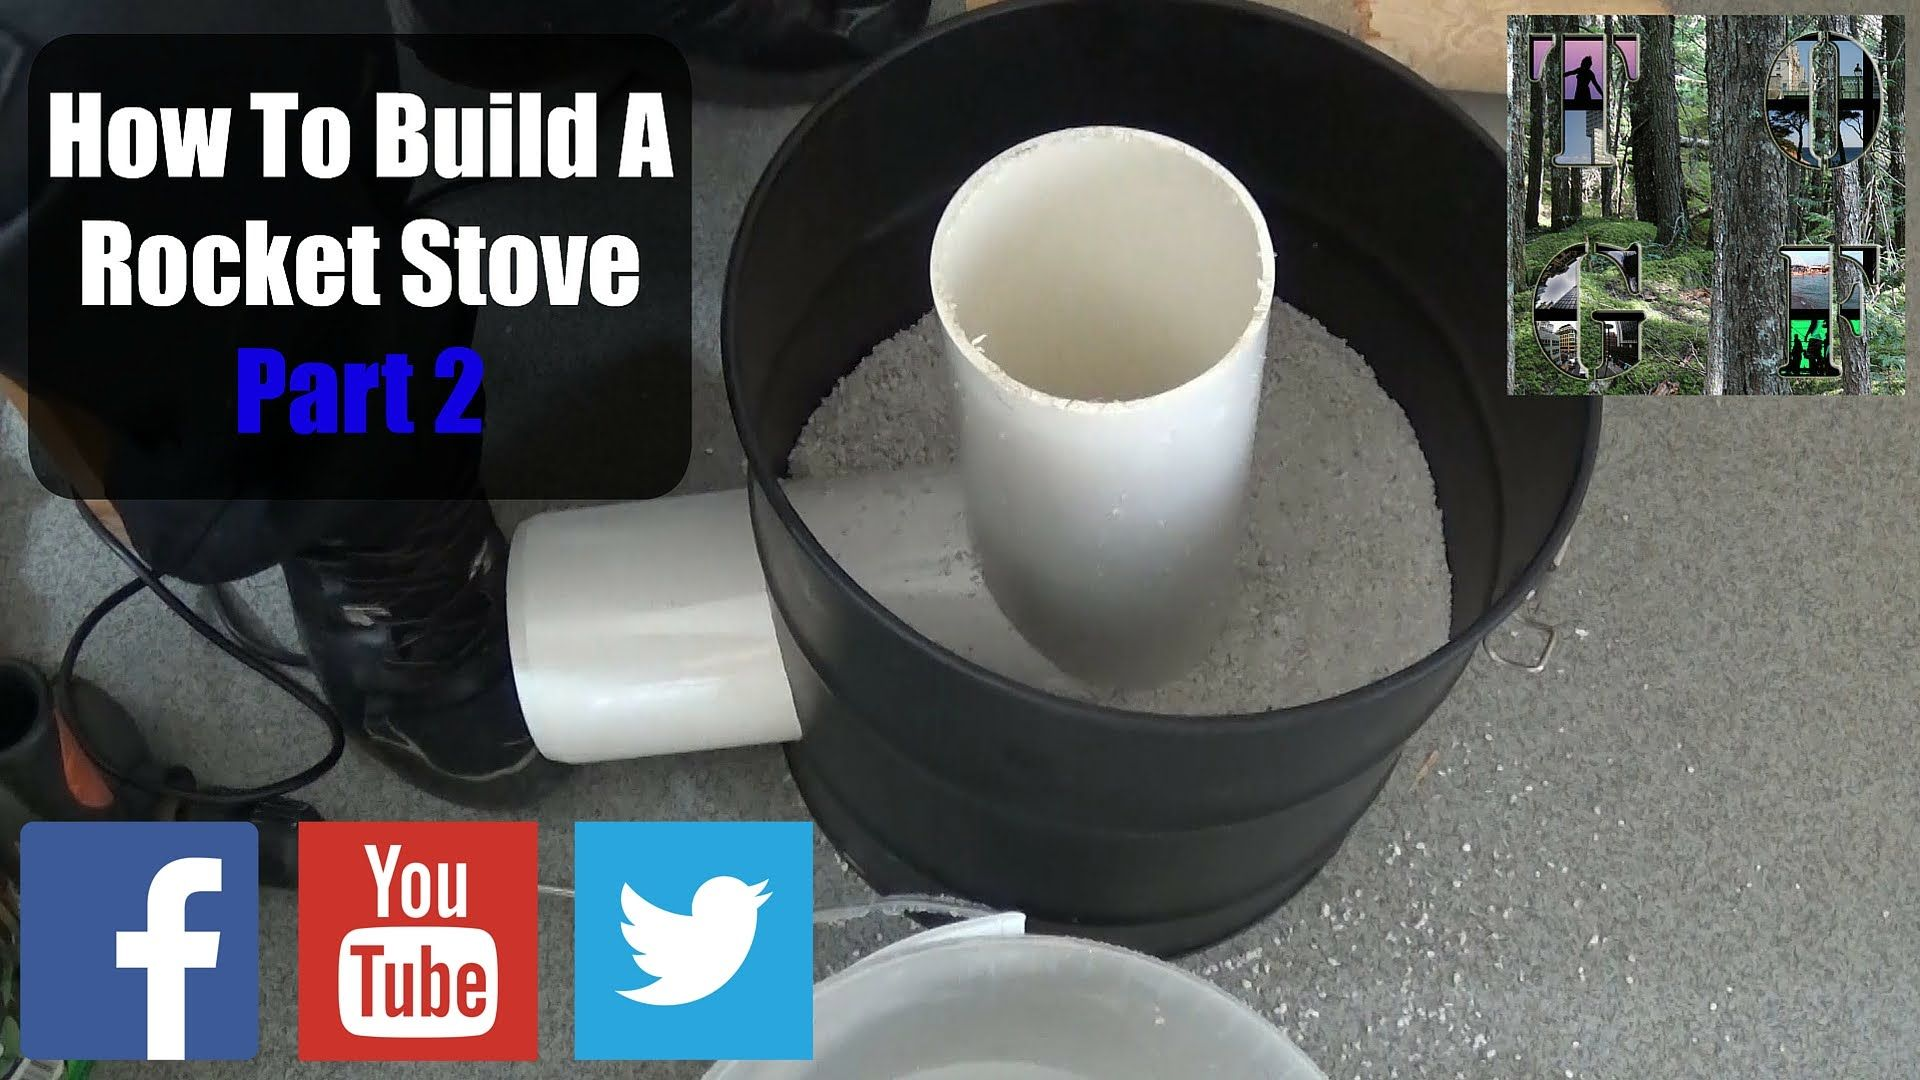 how to build a rocket stove part 2 easy step by step guide